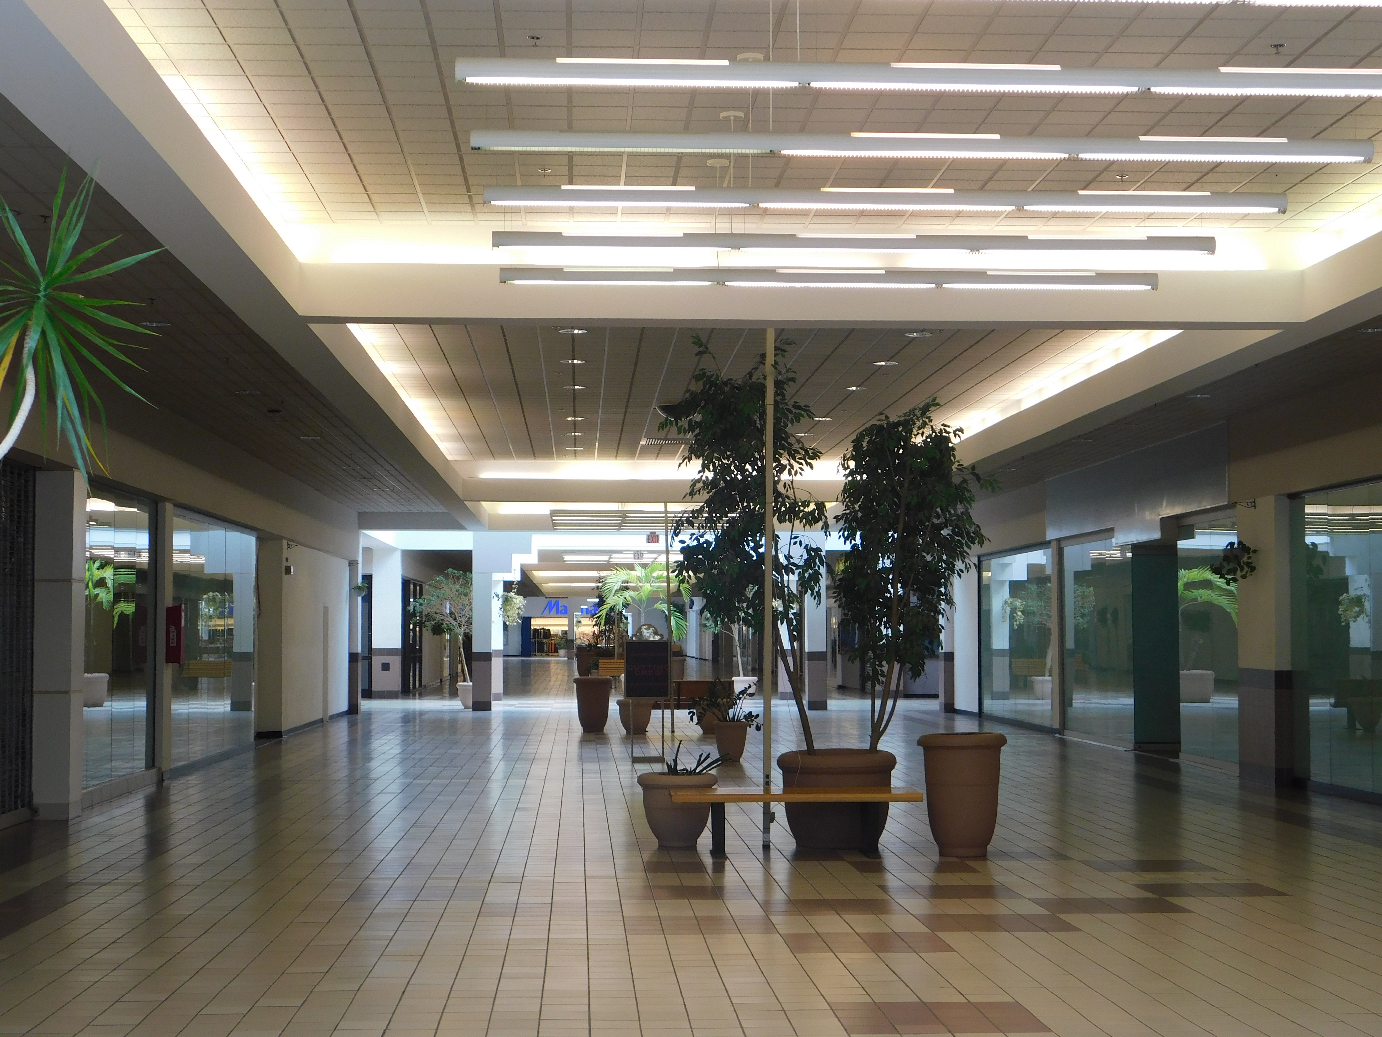 Beyond Easy: ghost malls, the denudation of place, & The Process